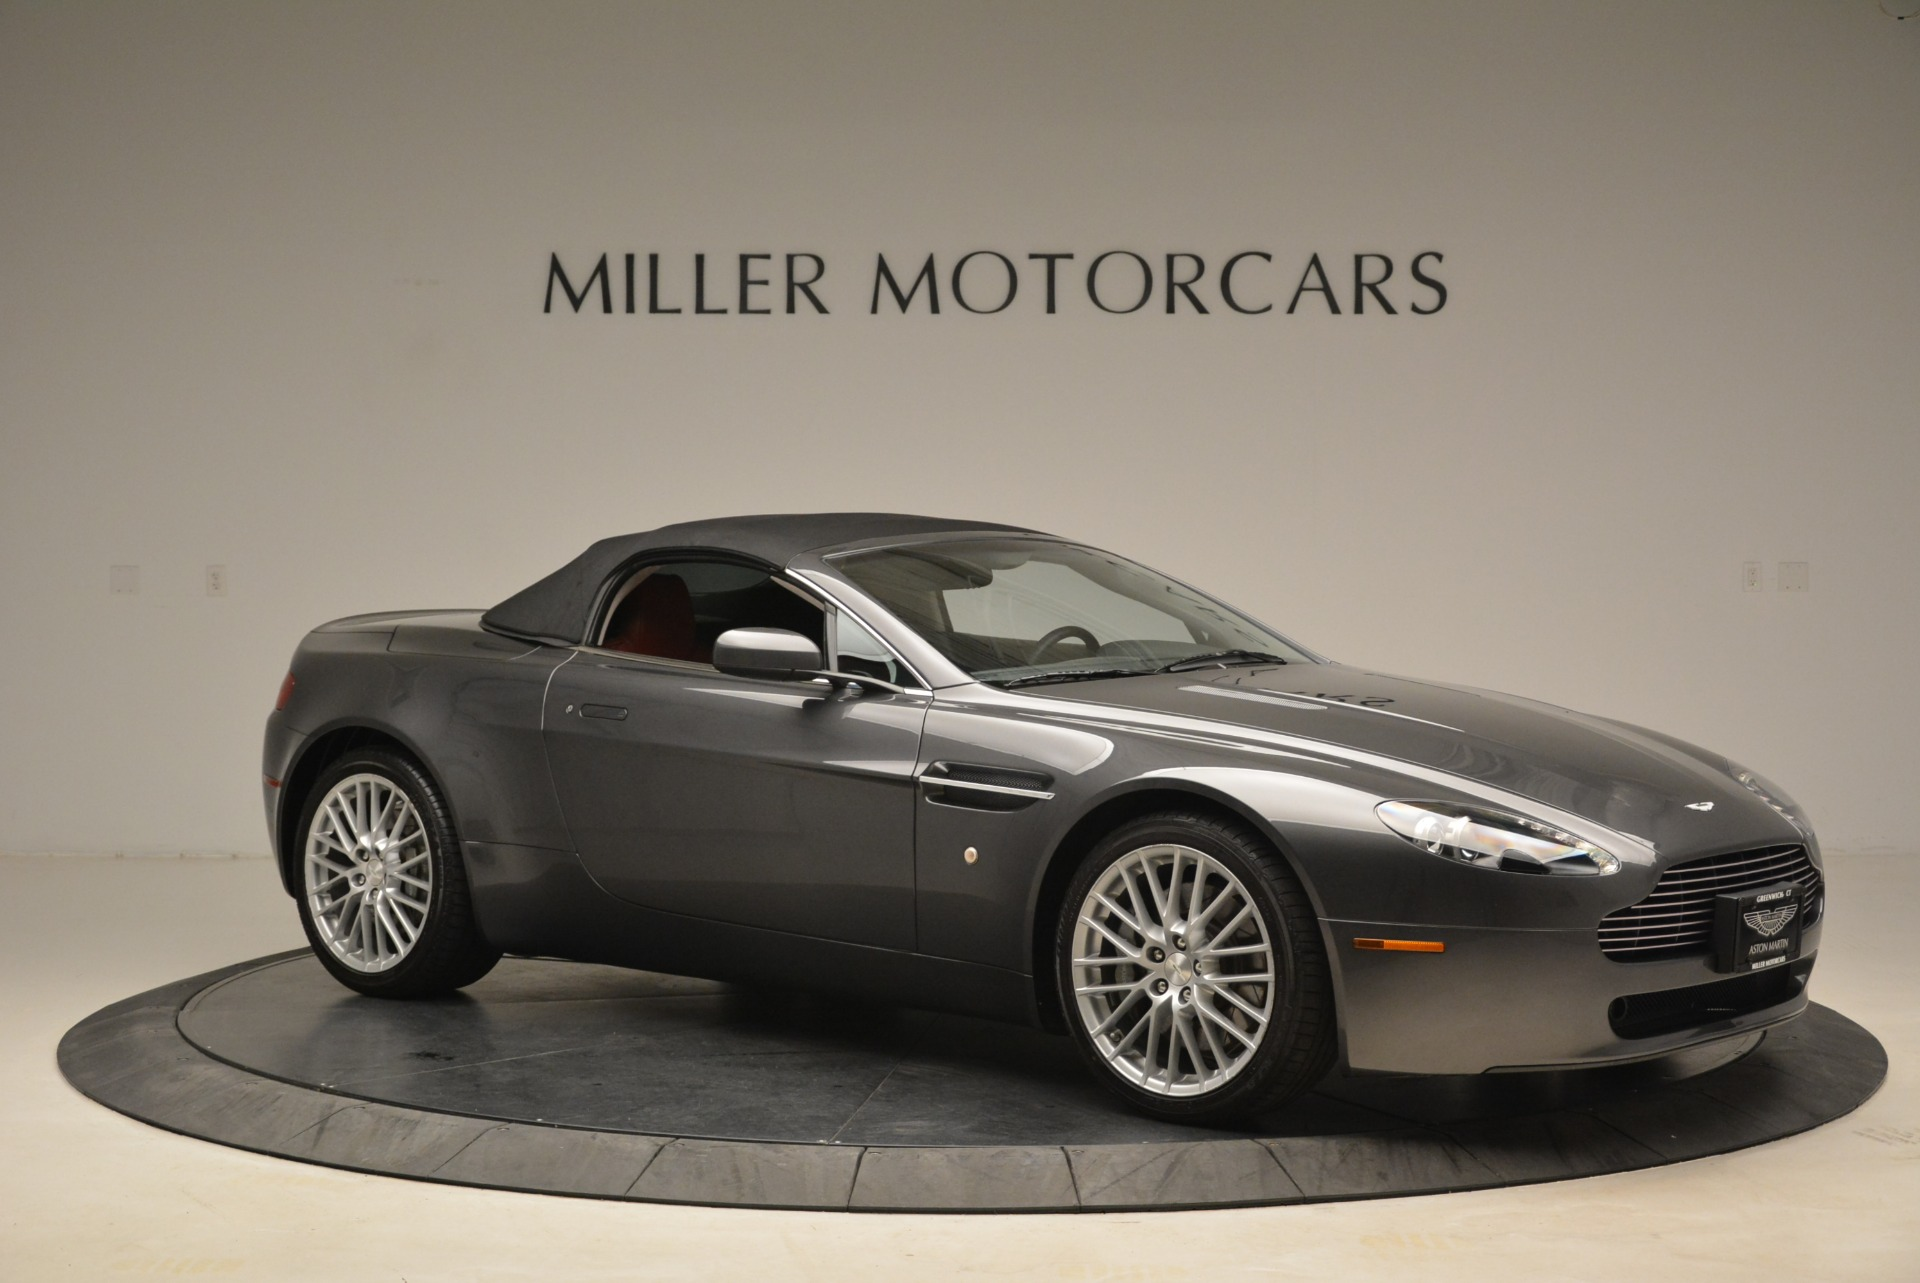 Used 2009 Aston Martin V8 Vantage Roadster For Sale In Greenwich, CT. Alfa Romeo of Greenwich, 7333 2123_p22